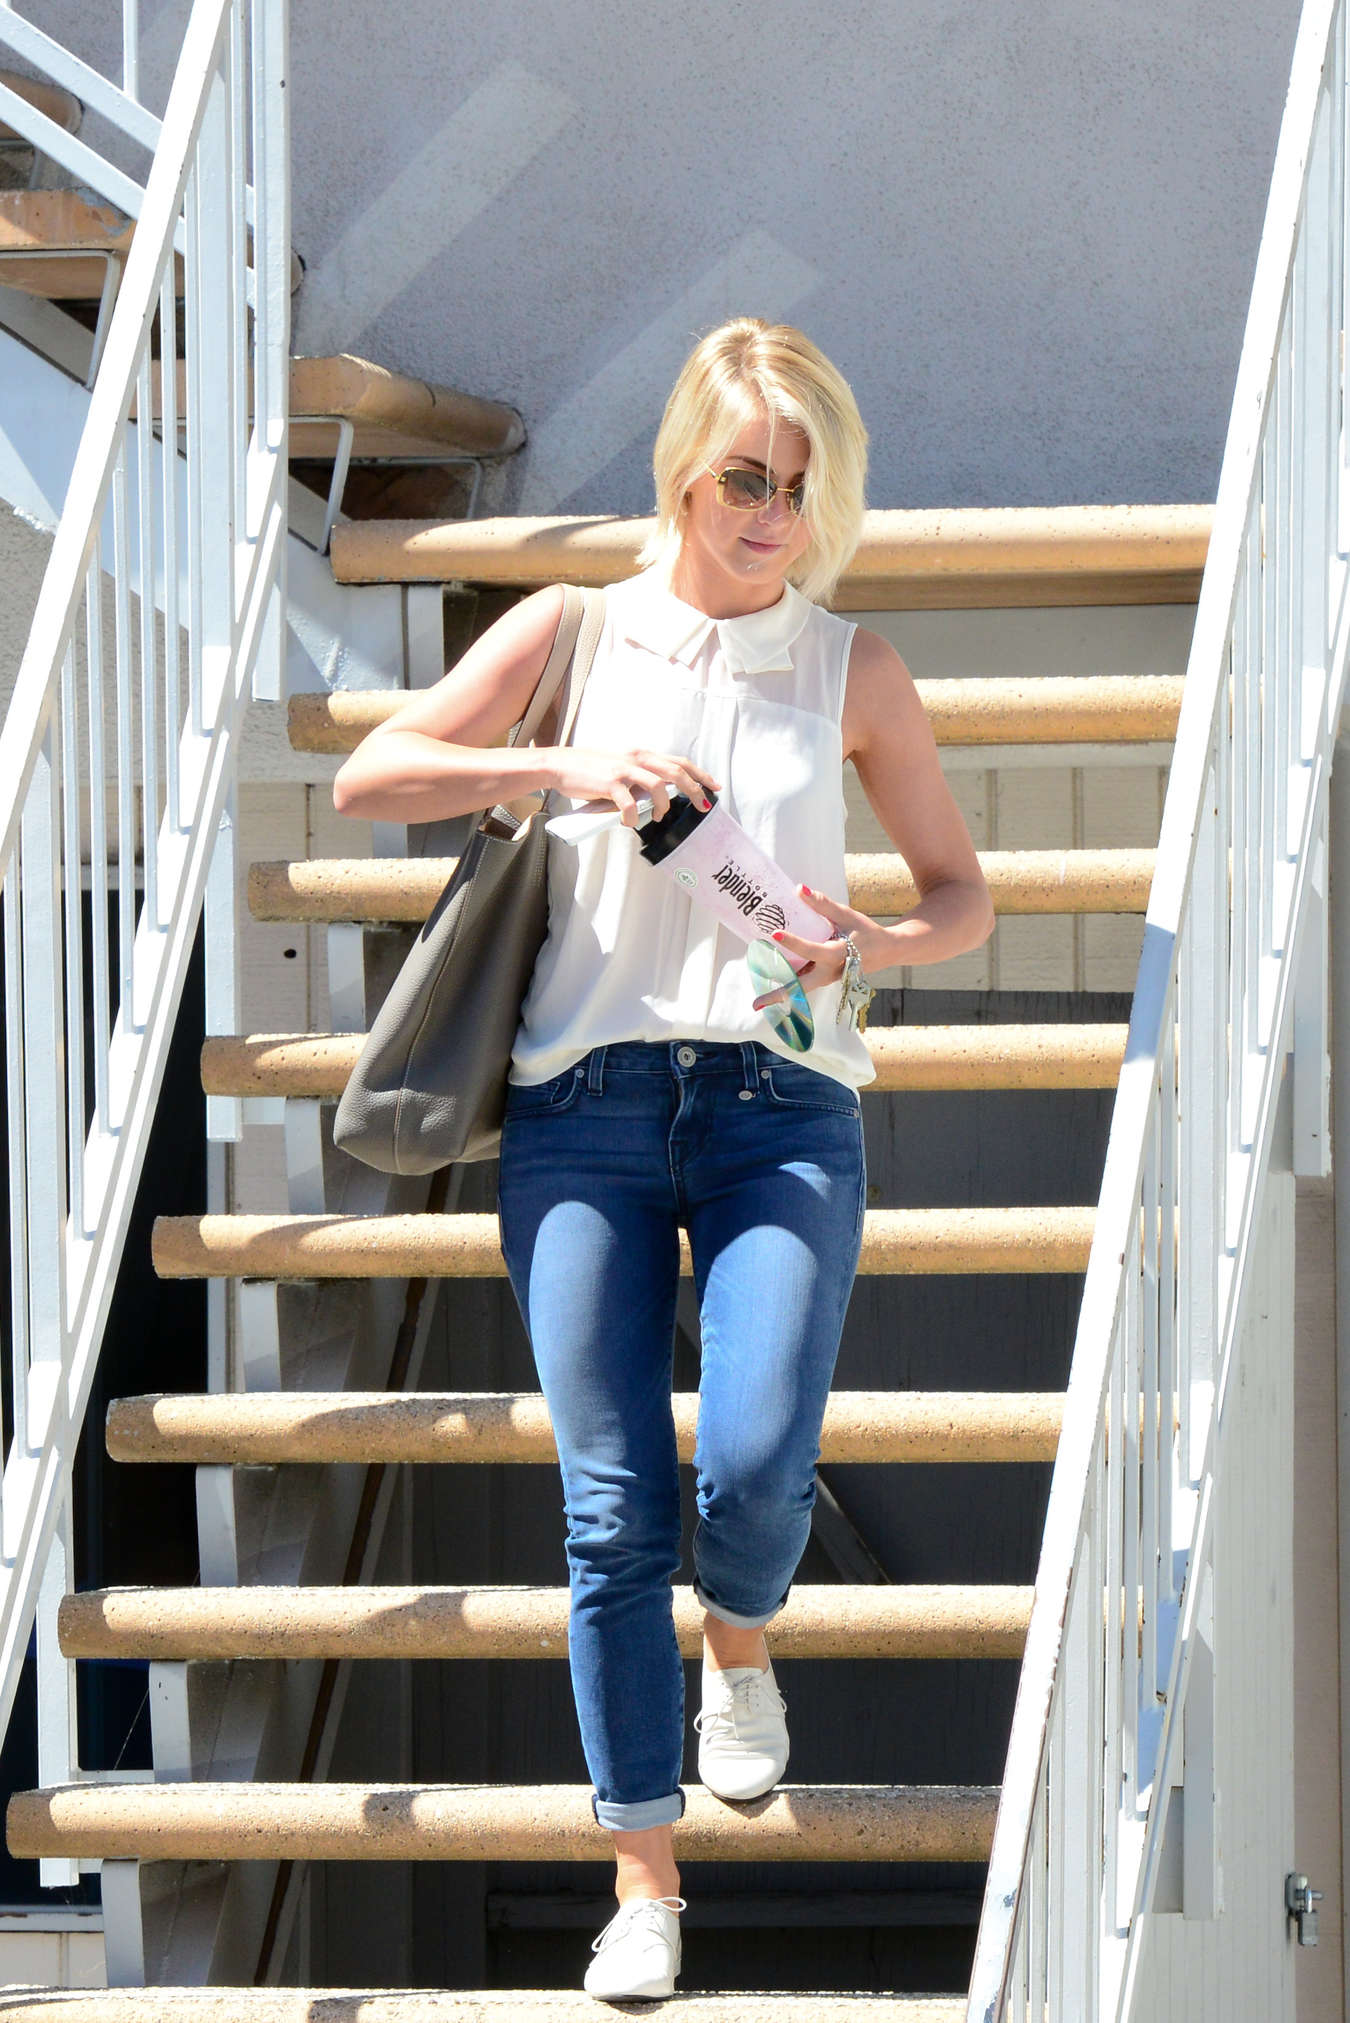 http://www.gotceleb.com/wp-content/uploads/celebrities/julianne-hough/in-jeans-at-an-acting-class-in-studio-city/Julianne-Hough---In-jeans--10.jpg Julianne